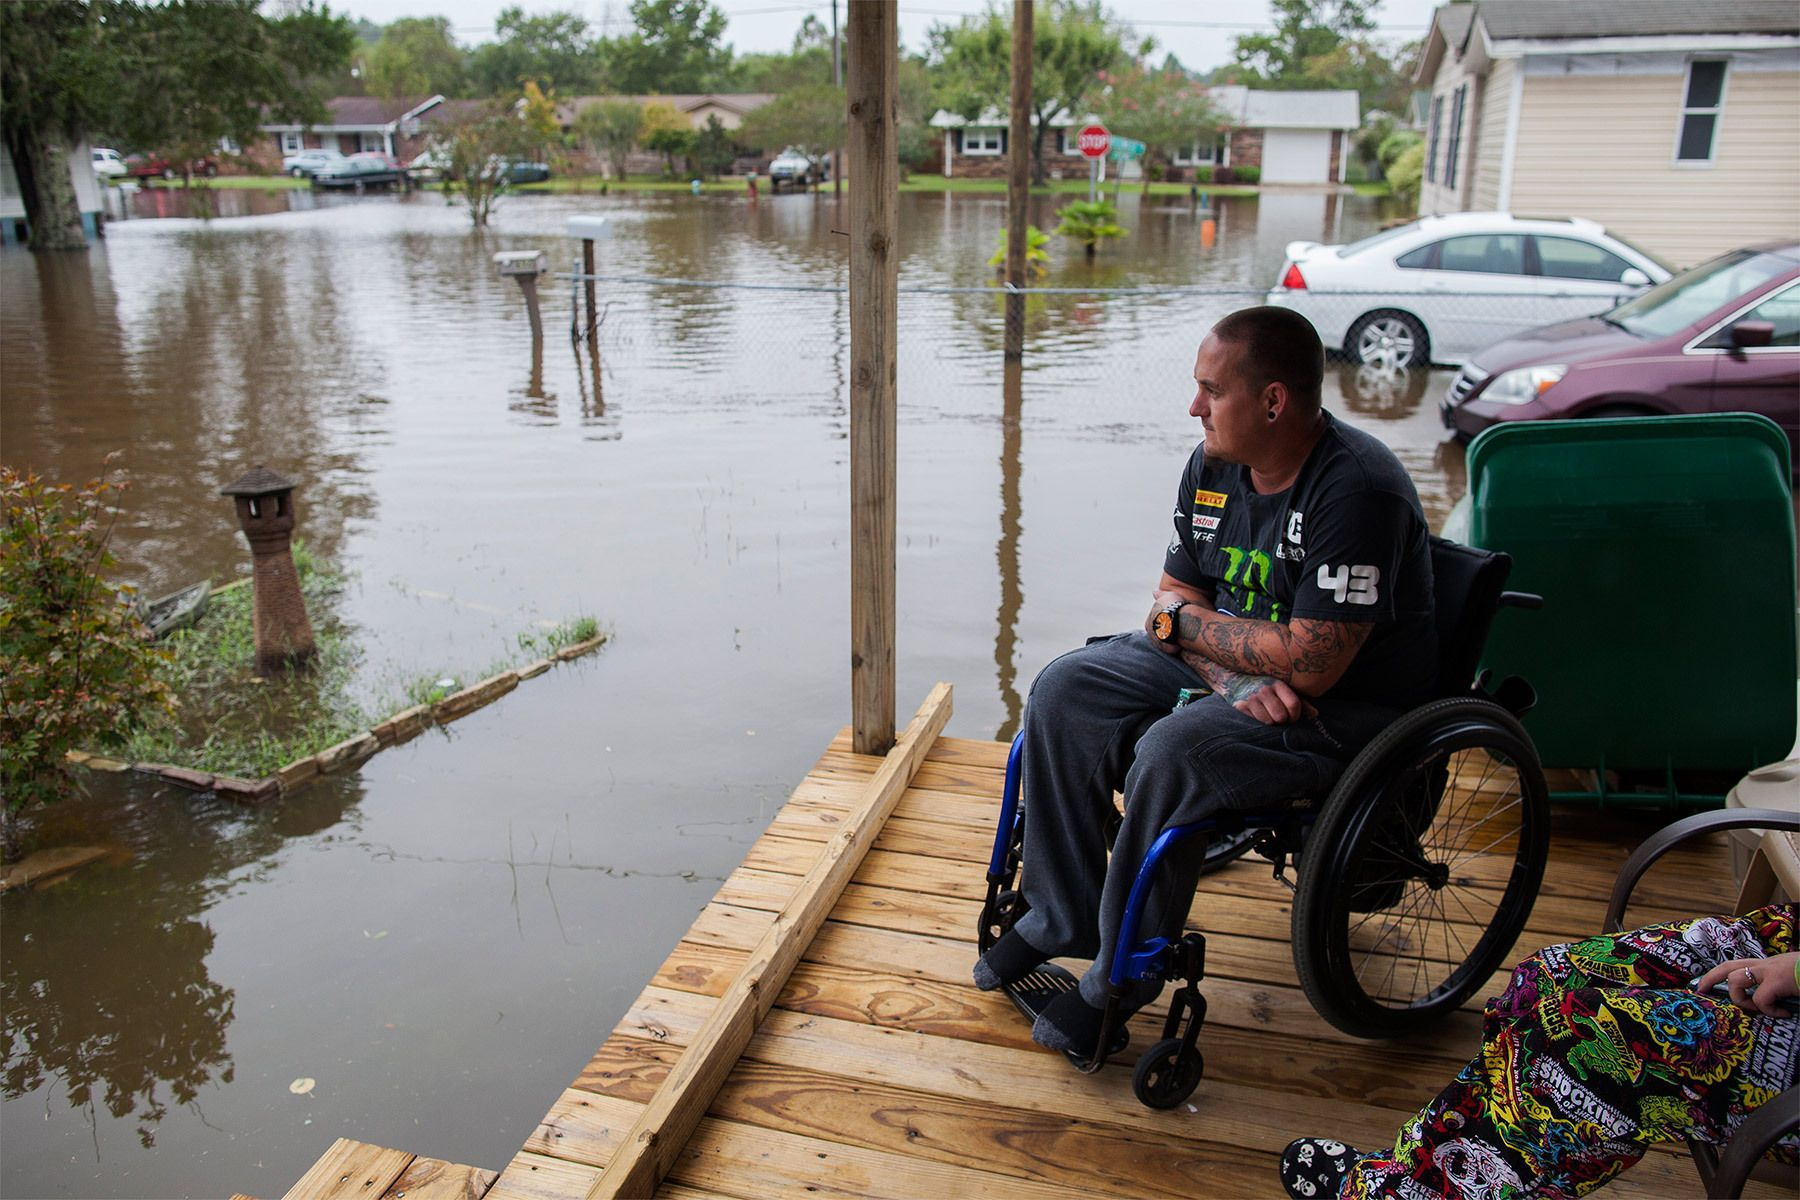 Chris Stubo watches the flood waters that surround his home on Apllewood Court in Myrtle Beach, South Carolina October 5, 2015. Torrential rainfall that South Carolina's governor called a once-in-a-millennium downpour triggered flooding in the southeastern U.S. state on Sunday, causing at least eight deaths in the Carolinas. The storm had dumped more than 20 inches (50 cm) of rain in parts of central South Carolina since Friday, the National Weather Service said. The state climatologist forecast another 2 to 6 inches (5 to 15 cm) through Monday as the rain began to slacken. REUTERS/Randall Hill